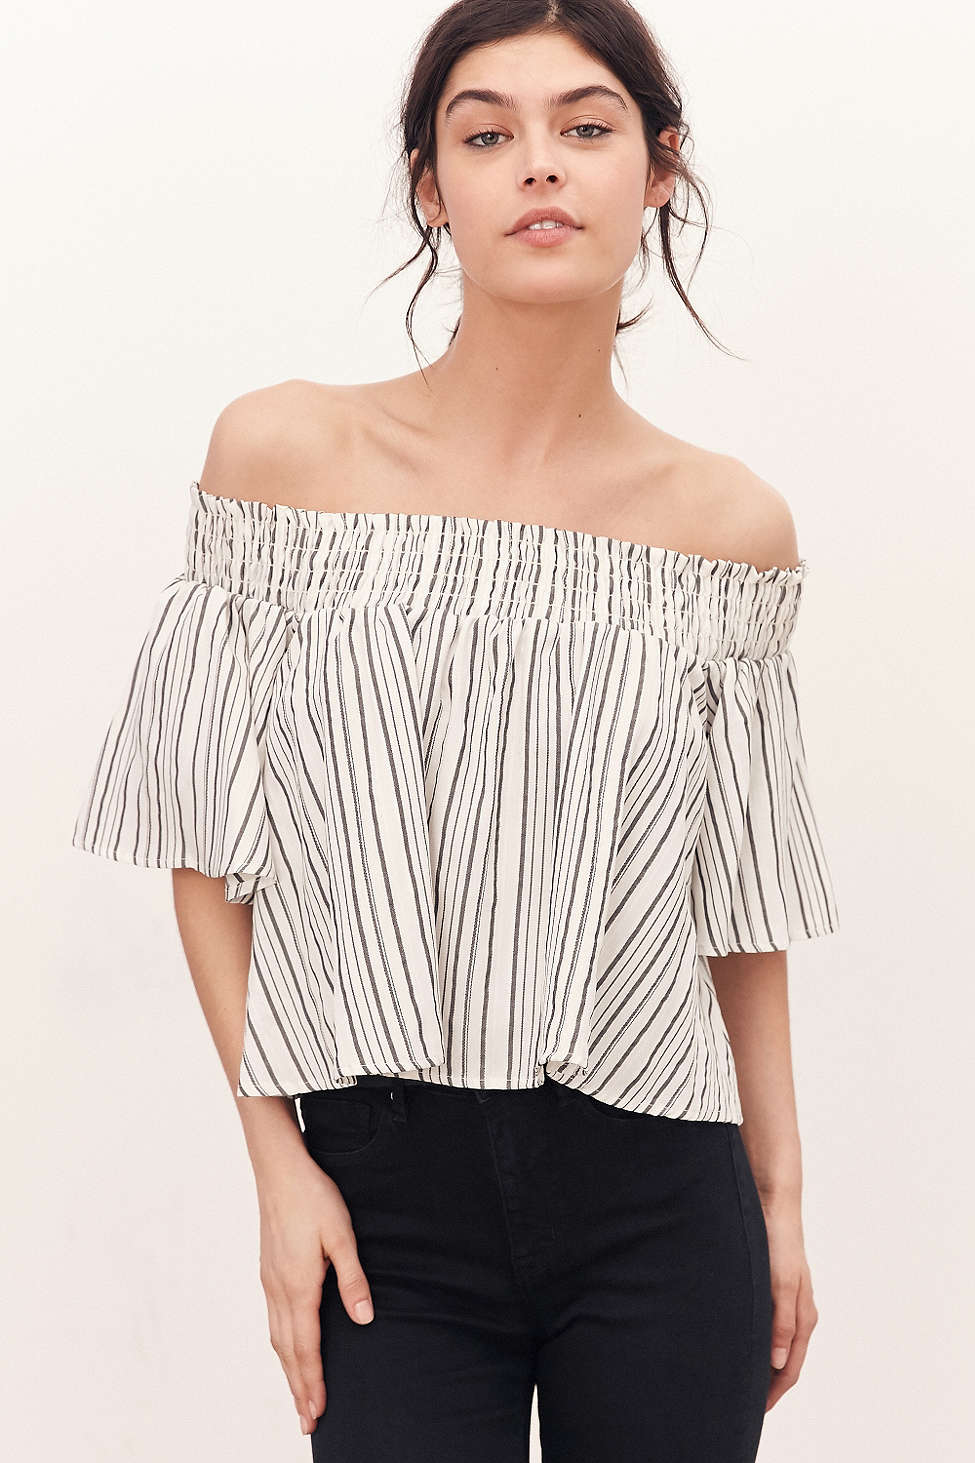 11 Off The Shoulder Tops You Need To Own To Complete Your